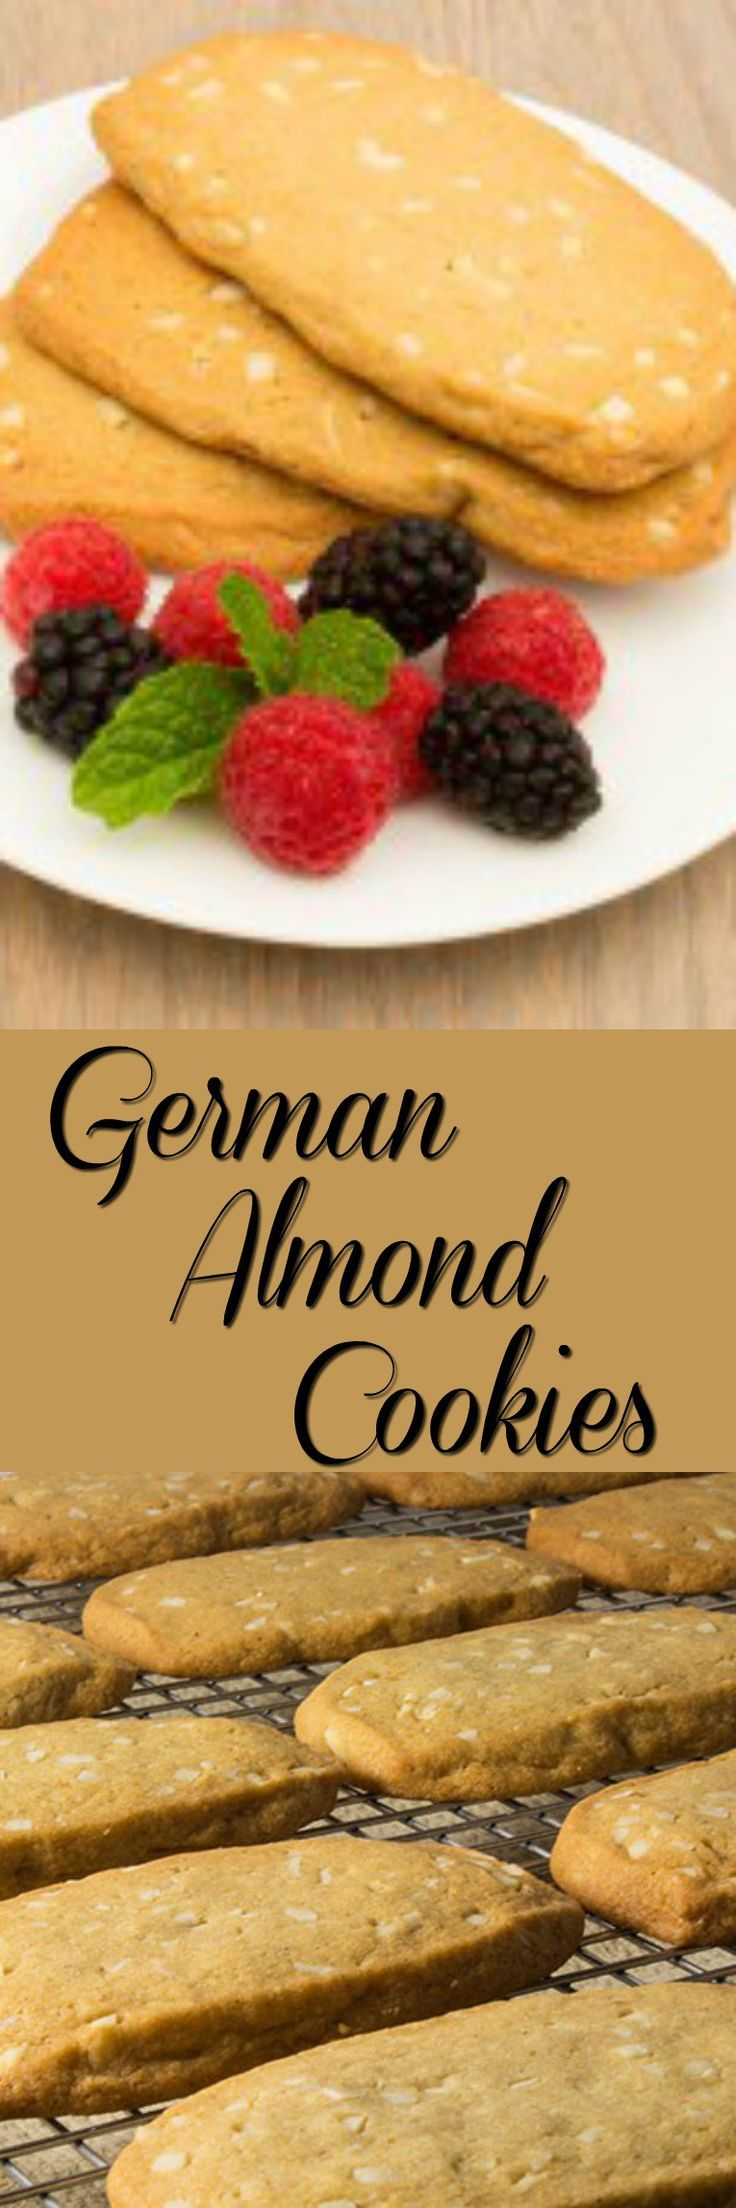 Old fashioned German cookie with nuts. Not too sweet. Calls for lard but shortening can be substituted. Stays soft for days.